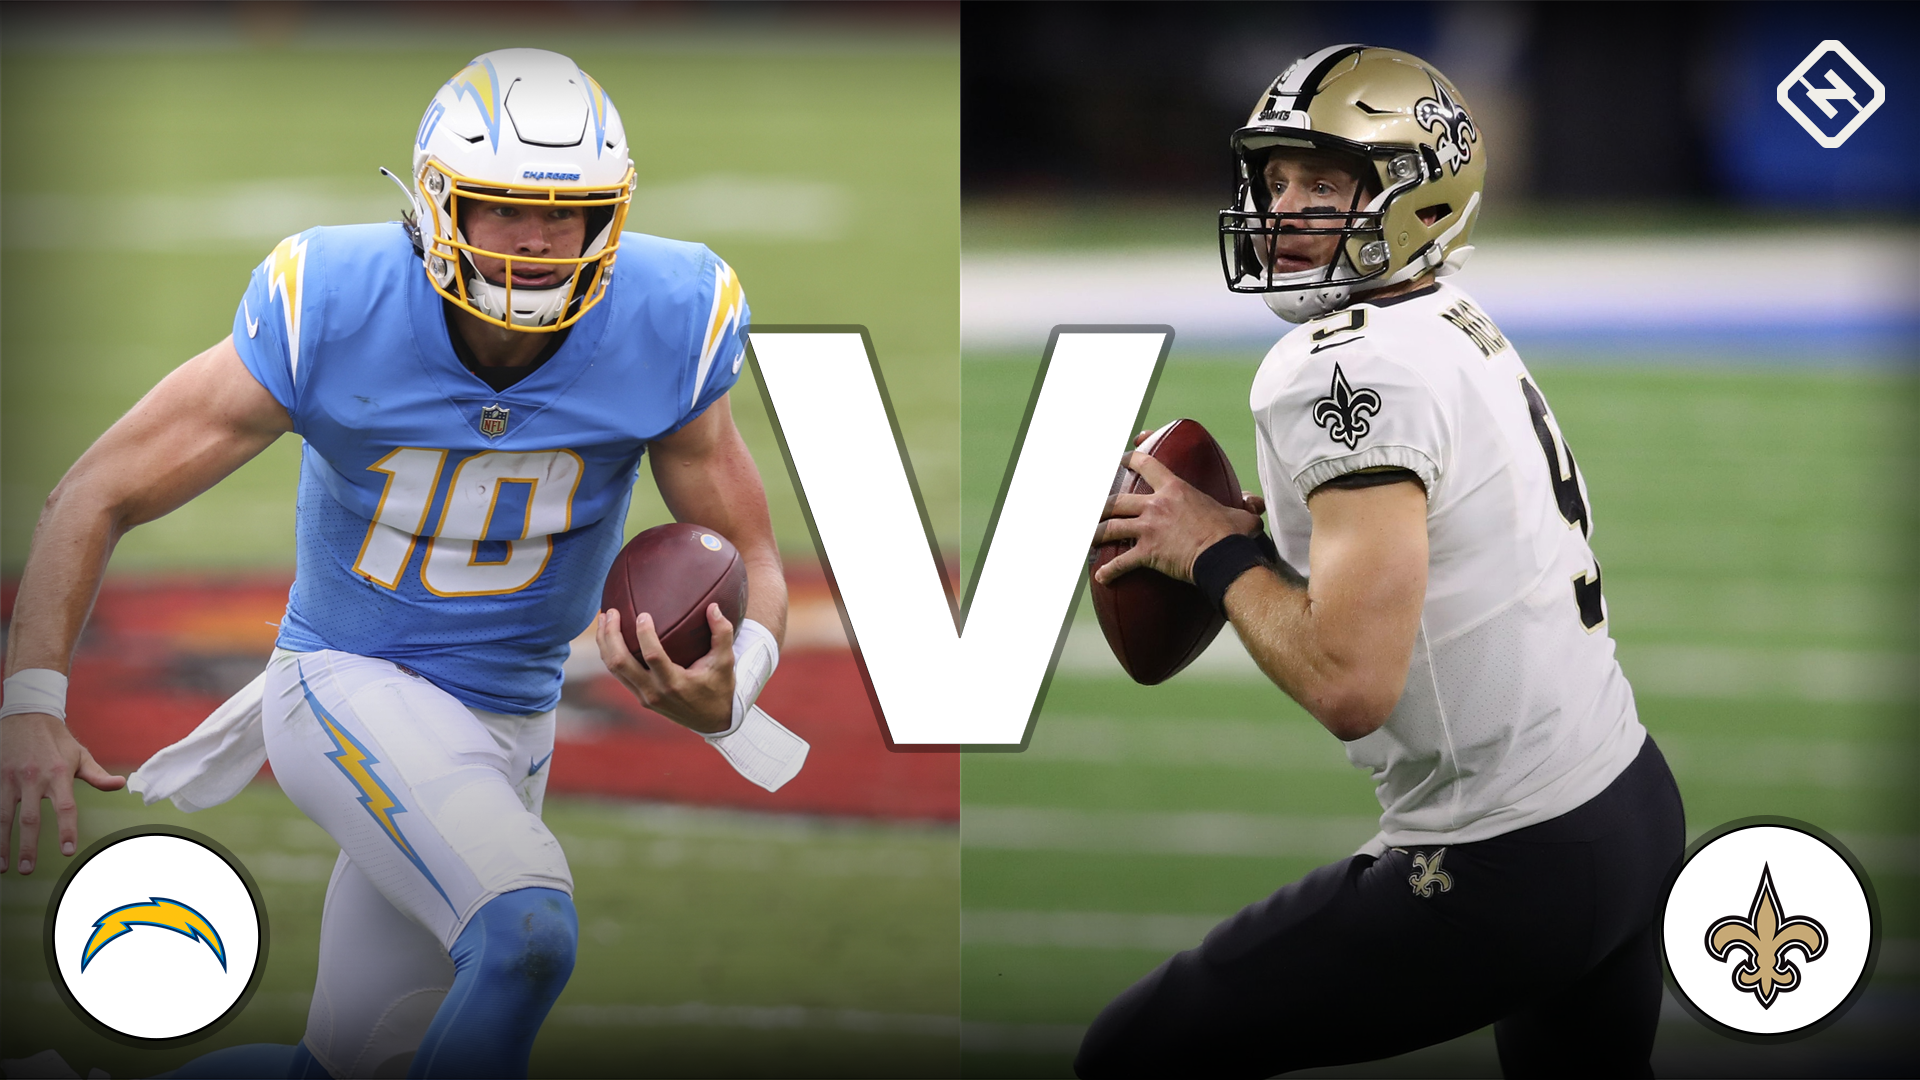 Saints vs. Chargers live score, updates, highlights from NFL's 'Monday Night Football' game